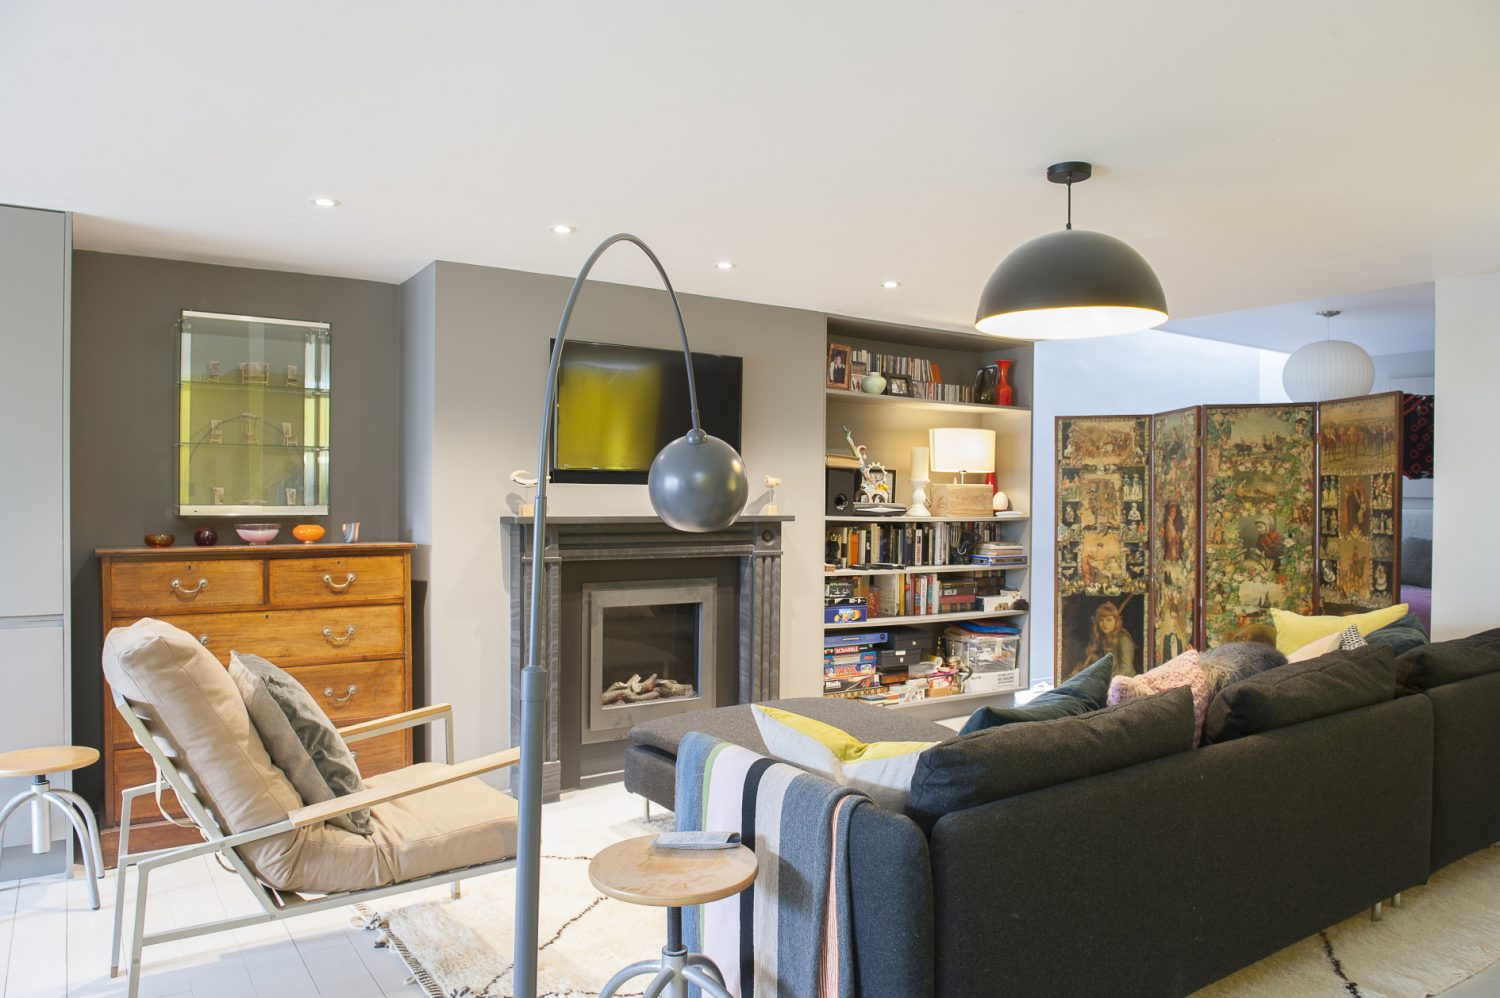 The basement apartment offers an independent space for guests, with the bed concealed behind a vintage decoupaged screen from AG Hendy & Co in Hastings Old Town. There is a recessed television over the vintage slate fireplace. The grey metal standard lamp is from Heals and the ceiling fitting is one of a pair by Habitat, black with a bright yellow interior the same as the feature wall